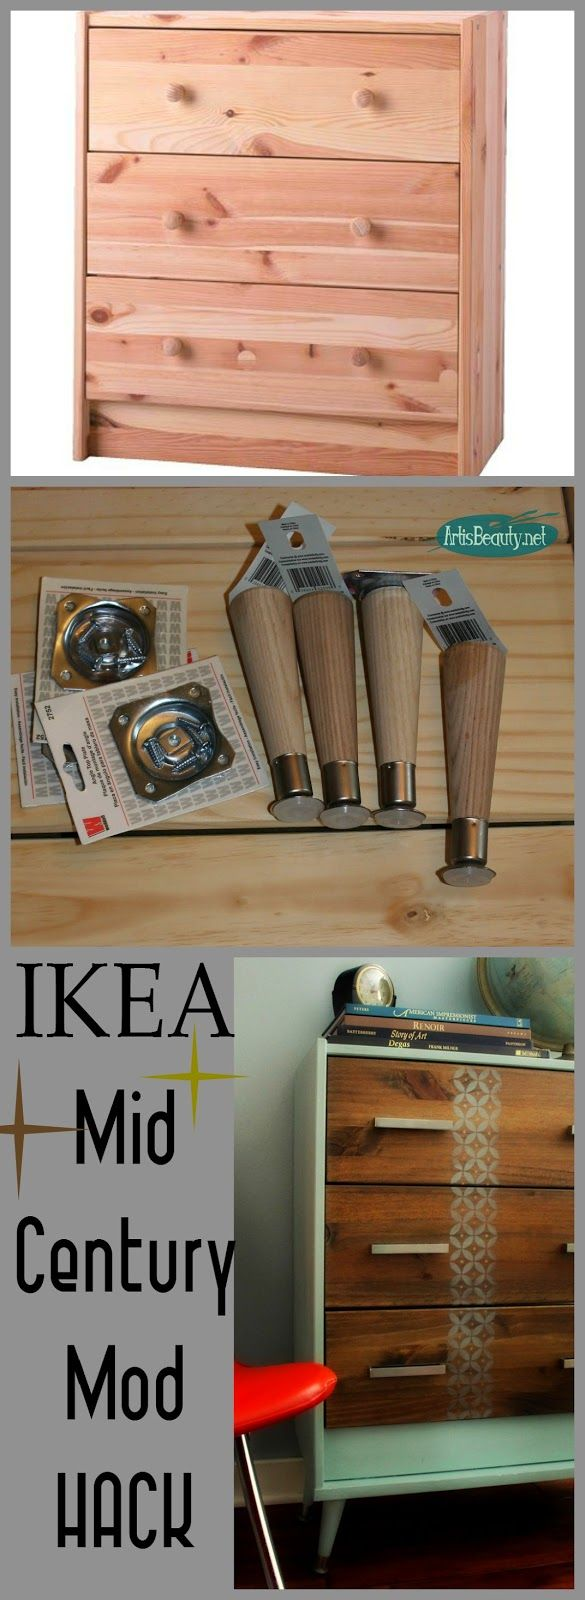 Best images about More Ikea on Pinterest Ikea hacks Lego and